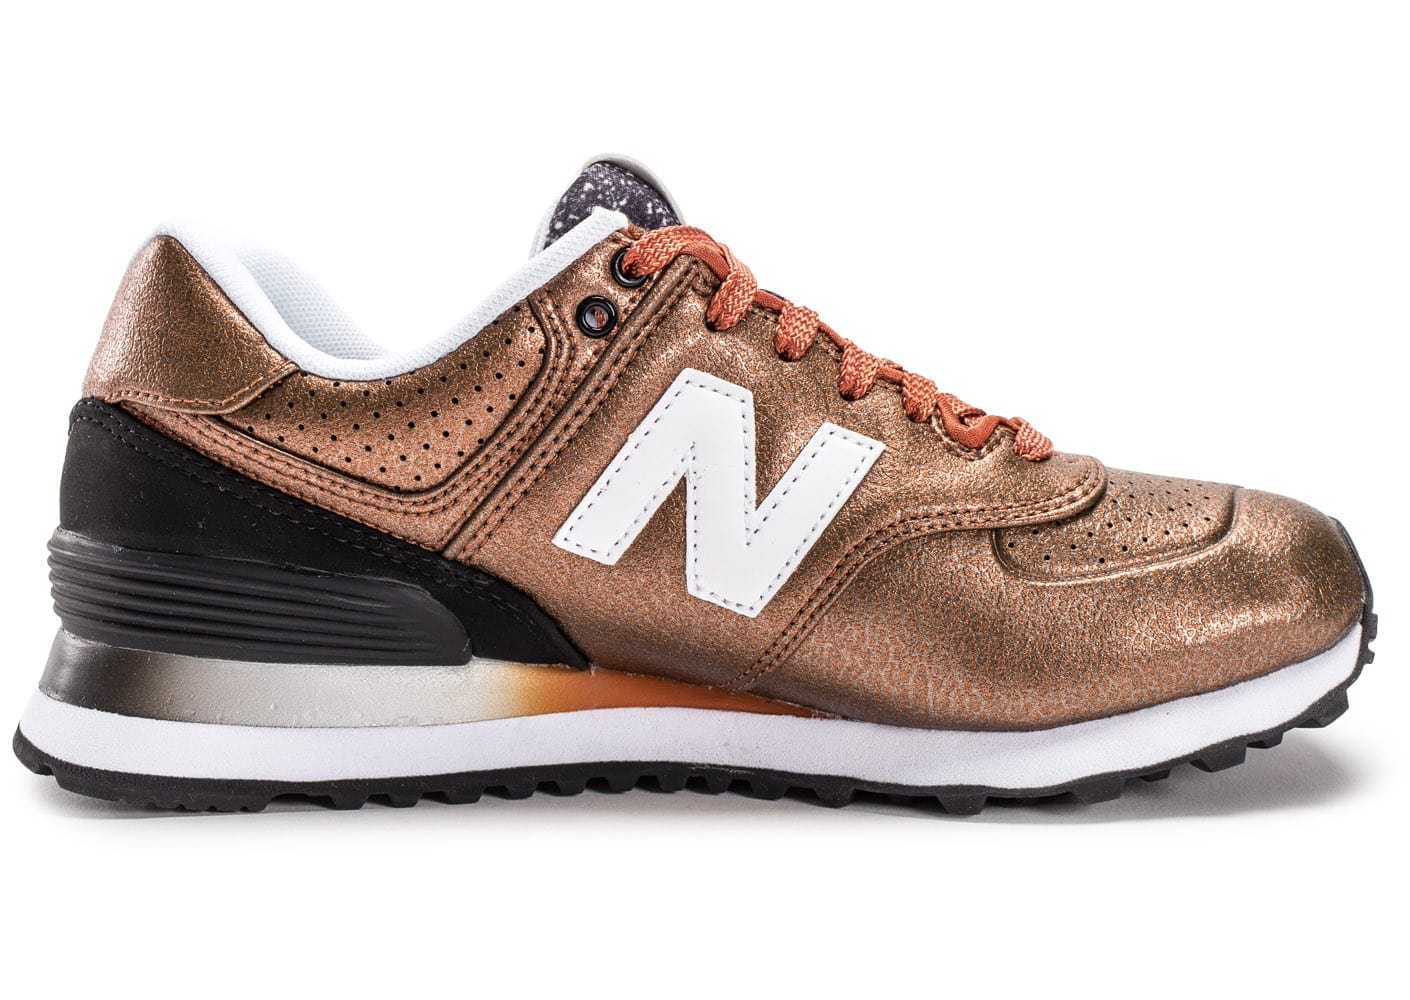 nouveau style e132f 8d9a1 New Balance WL574 RAB Bronze - Chaussures Chaussures - Chausport